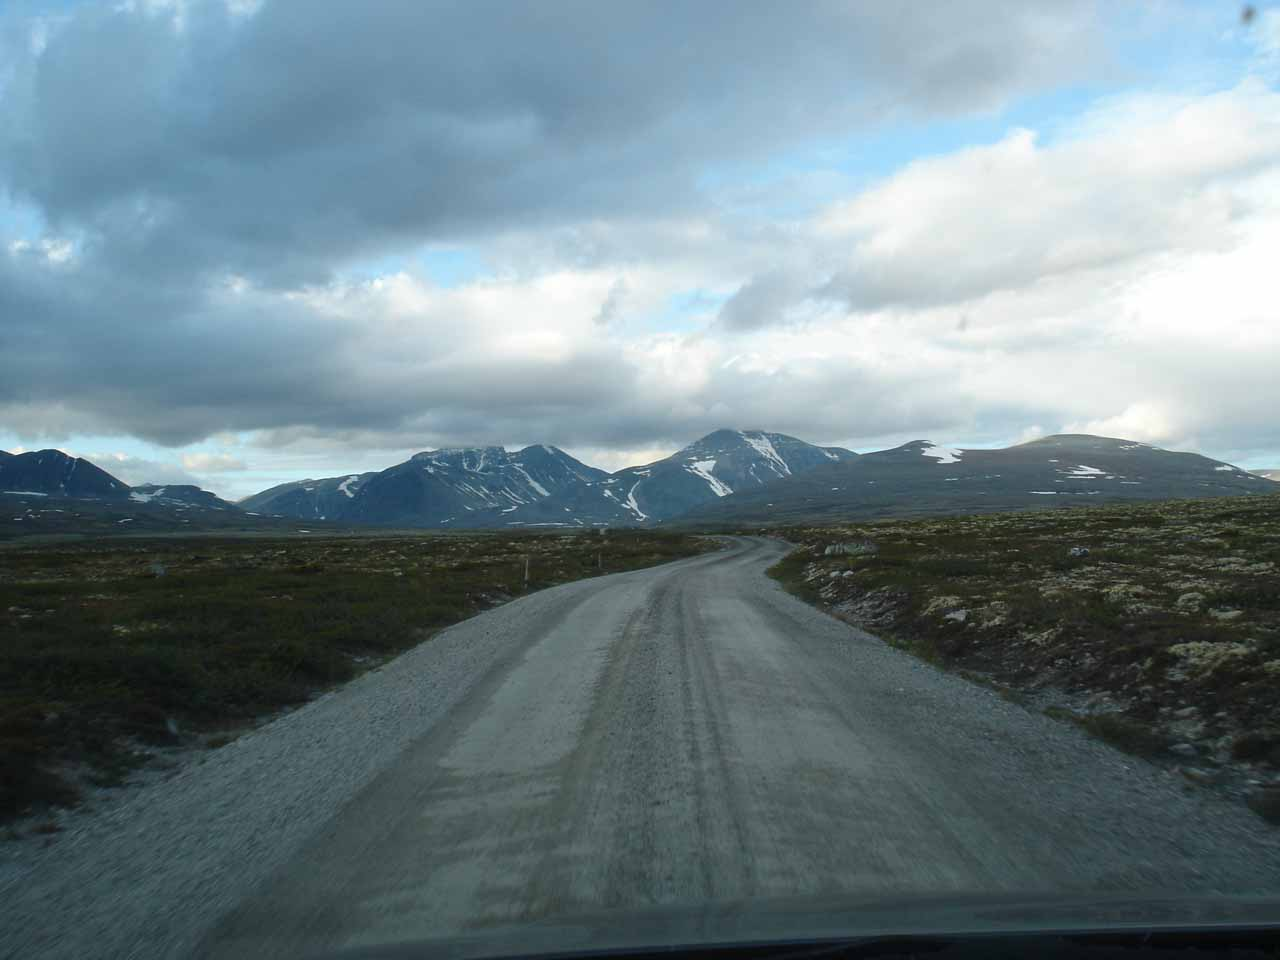 Driving on the unpaved road leading from Mysusæter to Spranget